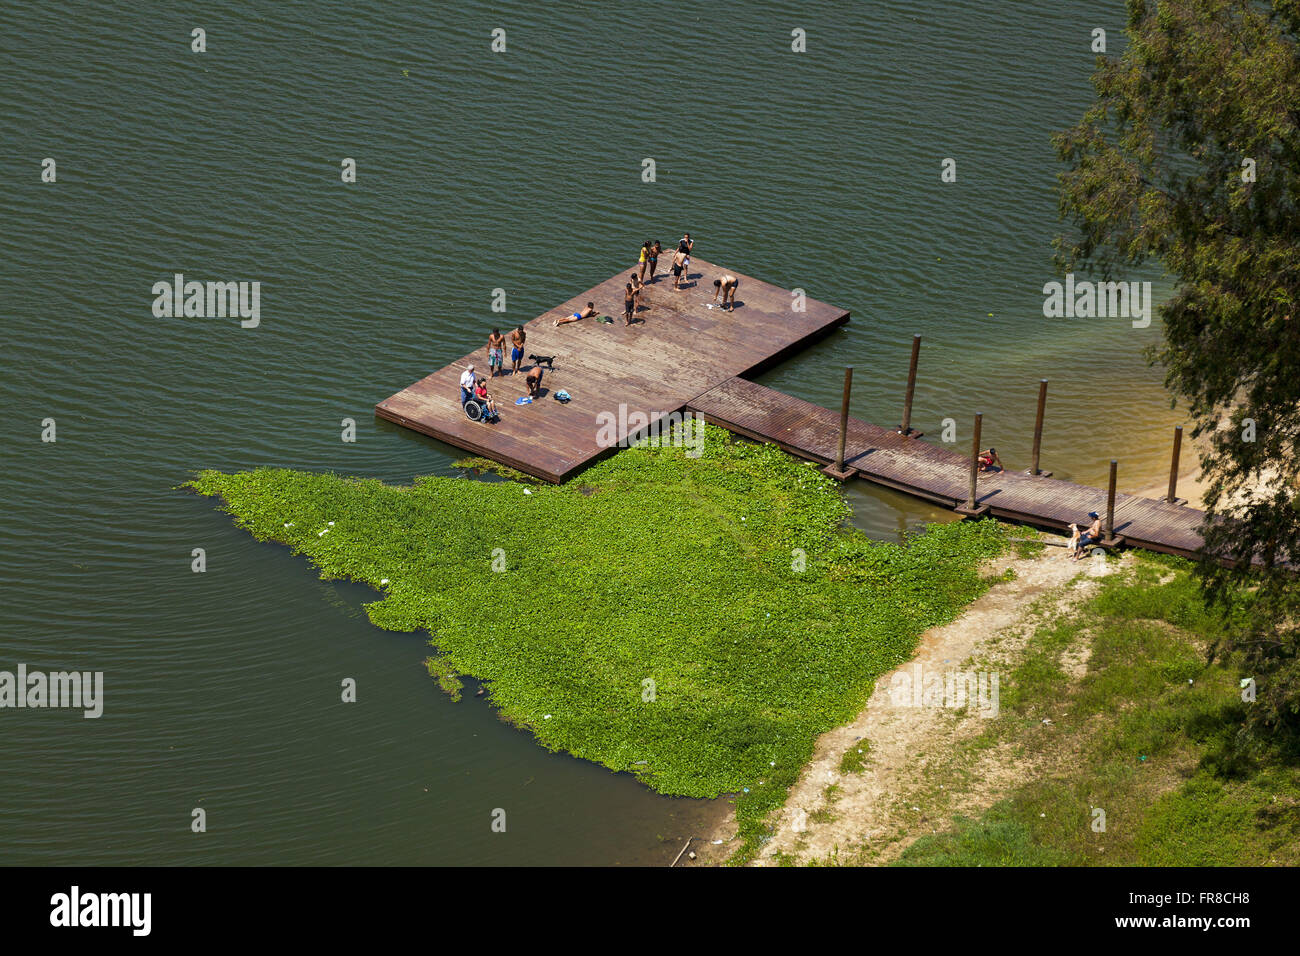 Deck for leisure living in the urbanized area of the Watershed Program Stock Photo